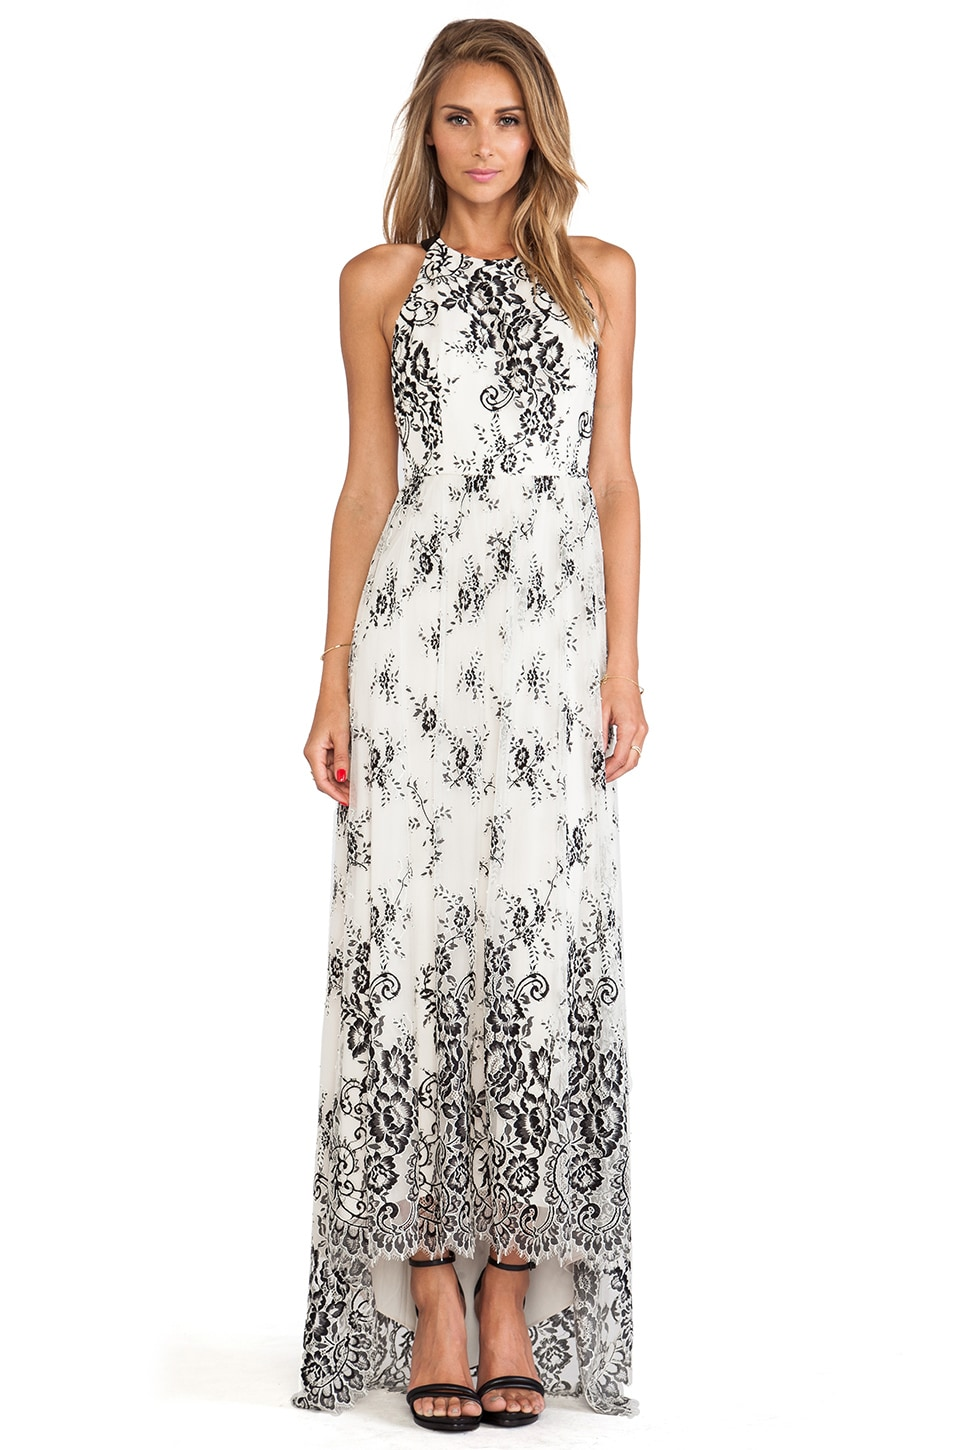 Alice + Olivia Isla T-Back Maxi Dress in Black & Cream